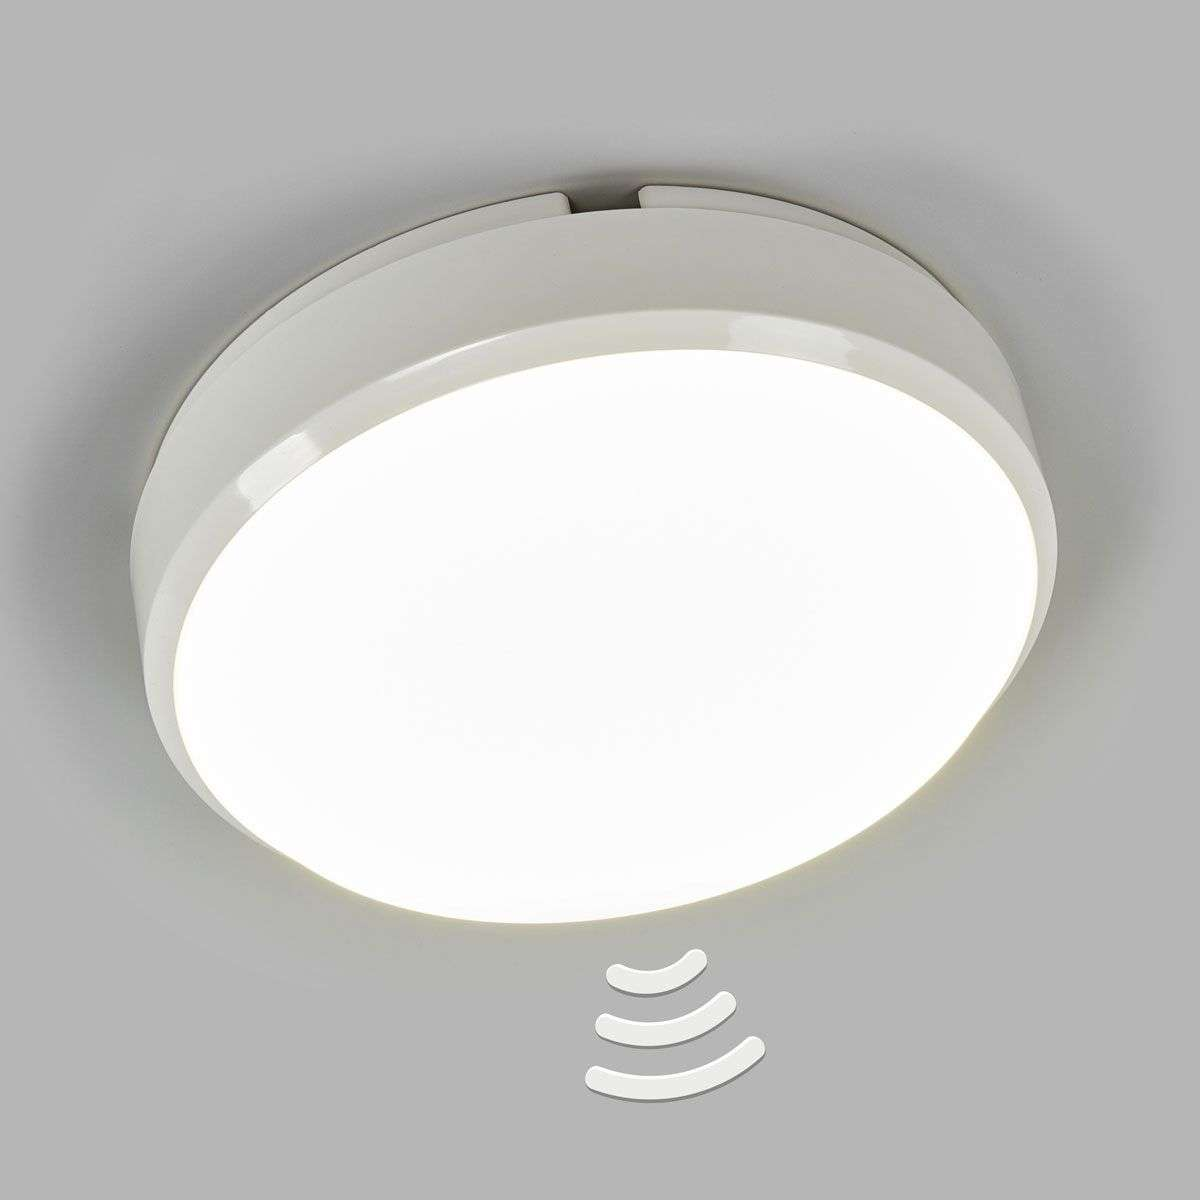 round led ceiling light bulkhead with sensor. Black Bedroom Furniture Sets. Home Design Ideas